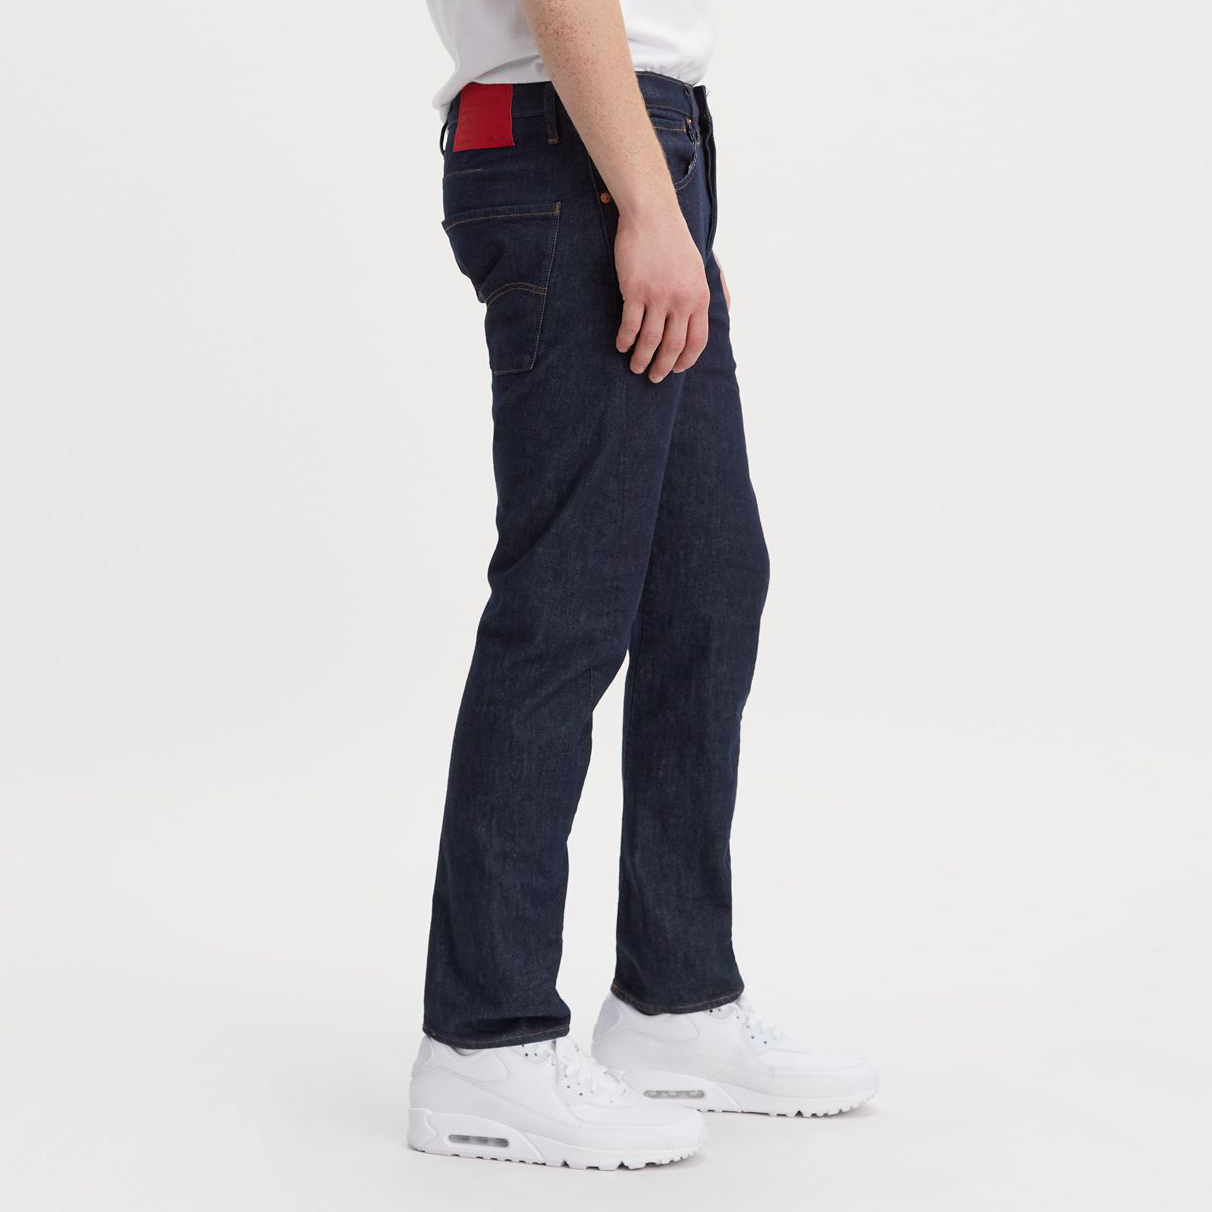 Jeans Levis Levi S Engineered Jeans 502 Taper In Rinse Denim Lej